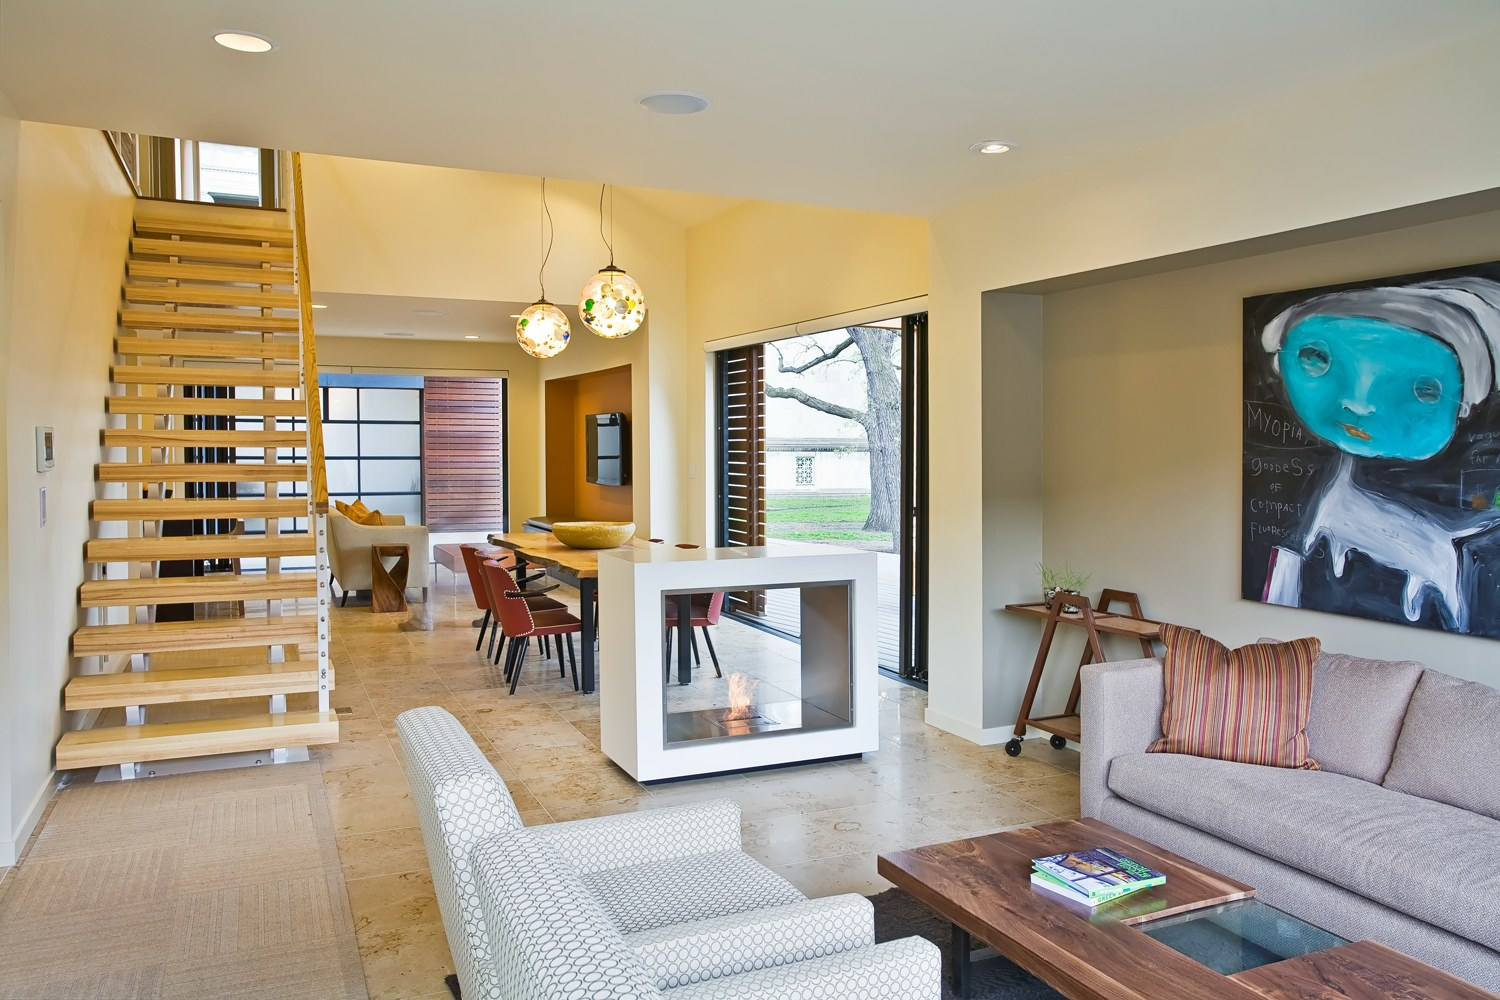 Small Living Room Decoration 6 Smart Ideas To Make It: Smart Home Ideas: High Technology Controlling And